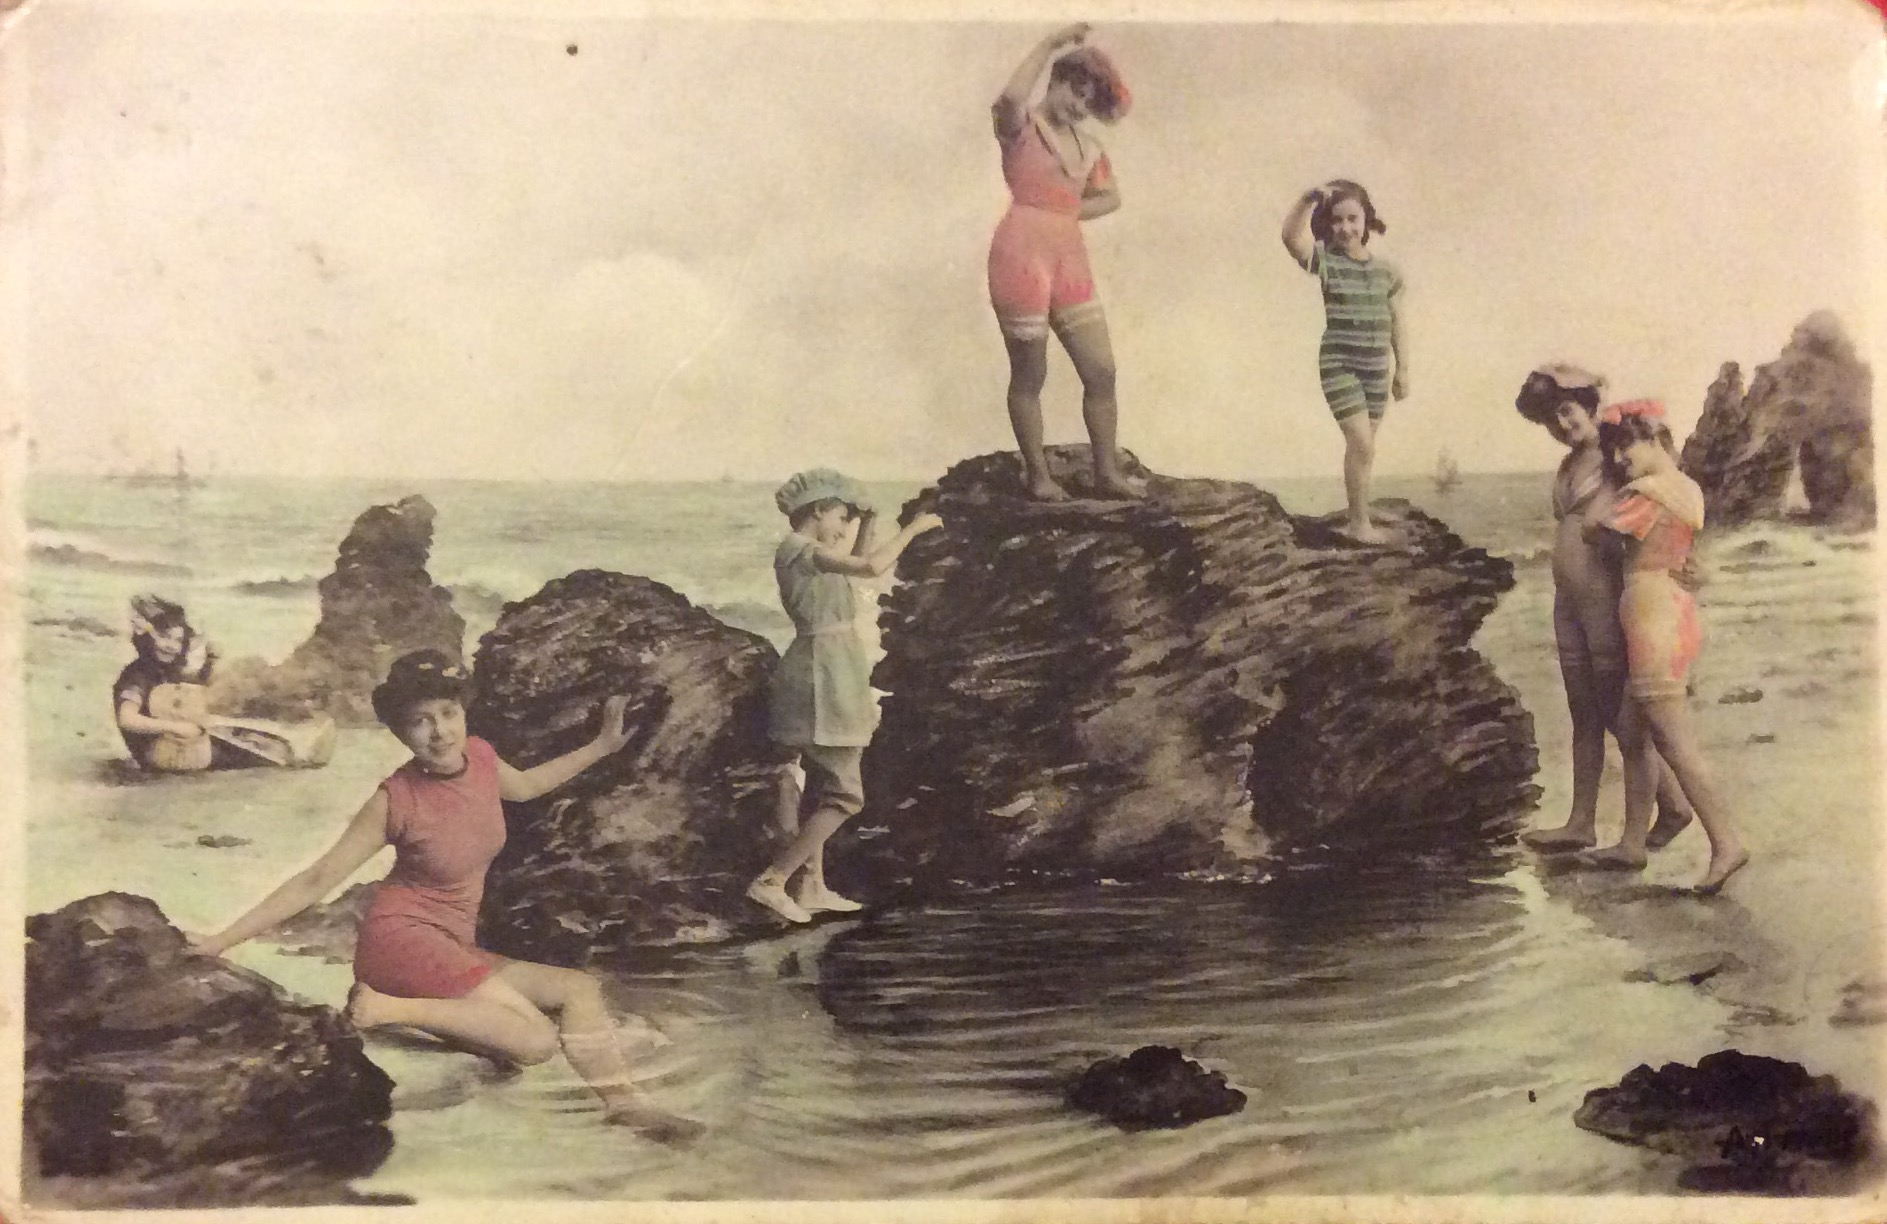 A French card showing young people enjoying the seaside